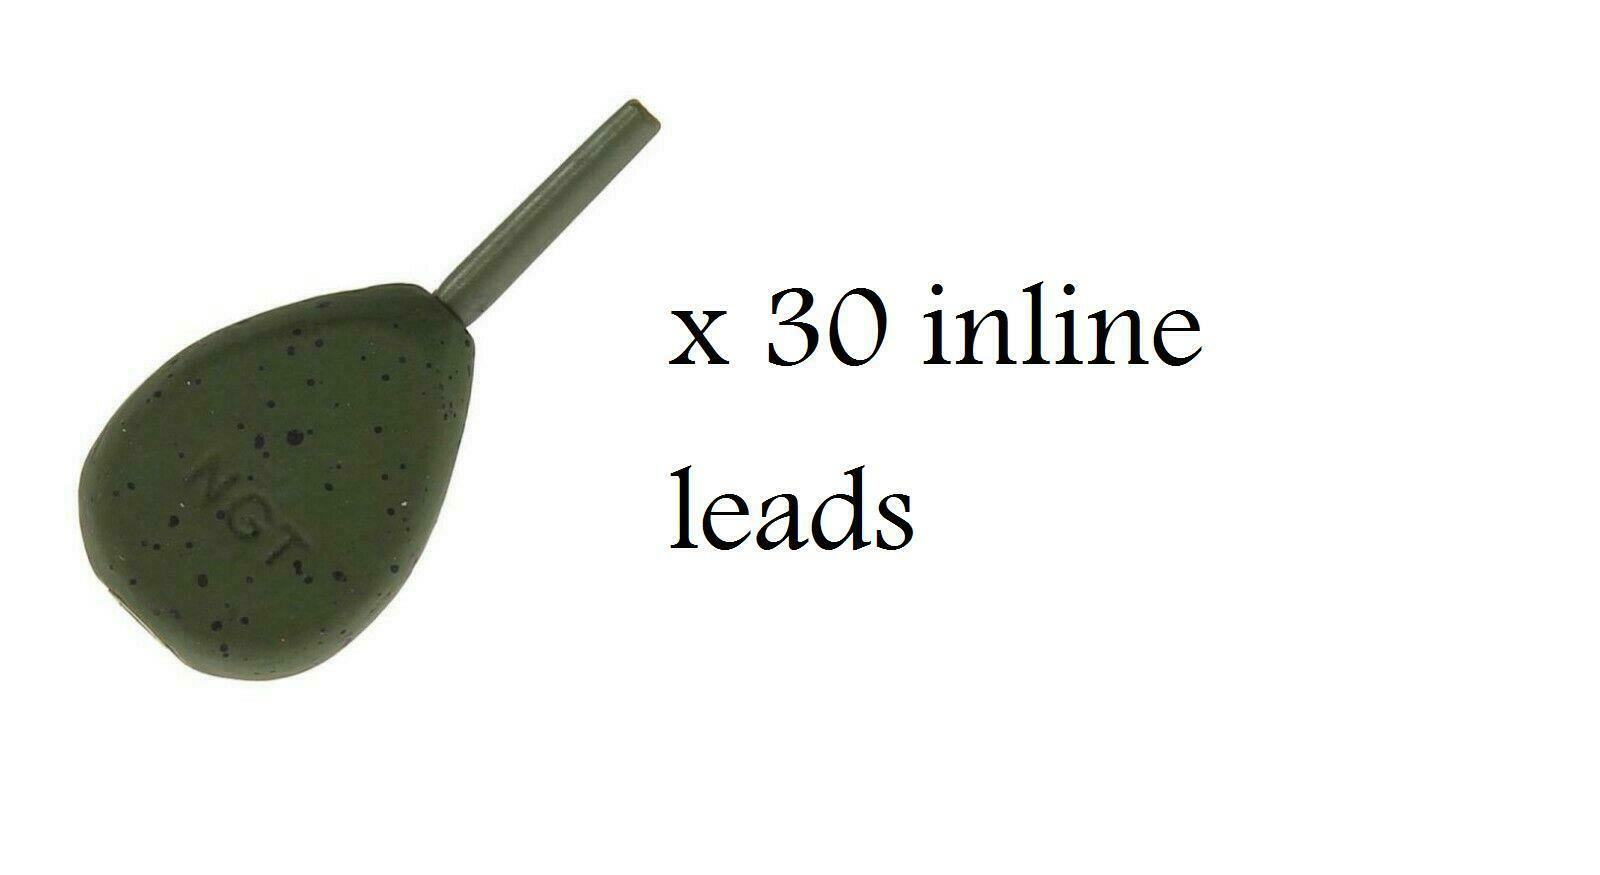 Ngt x 30 inline pear 1.1oz  coated leads weights carp coarse fishing